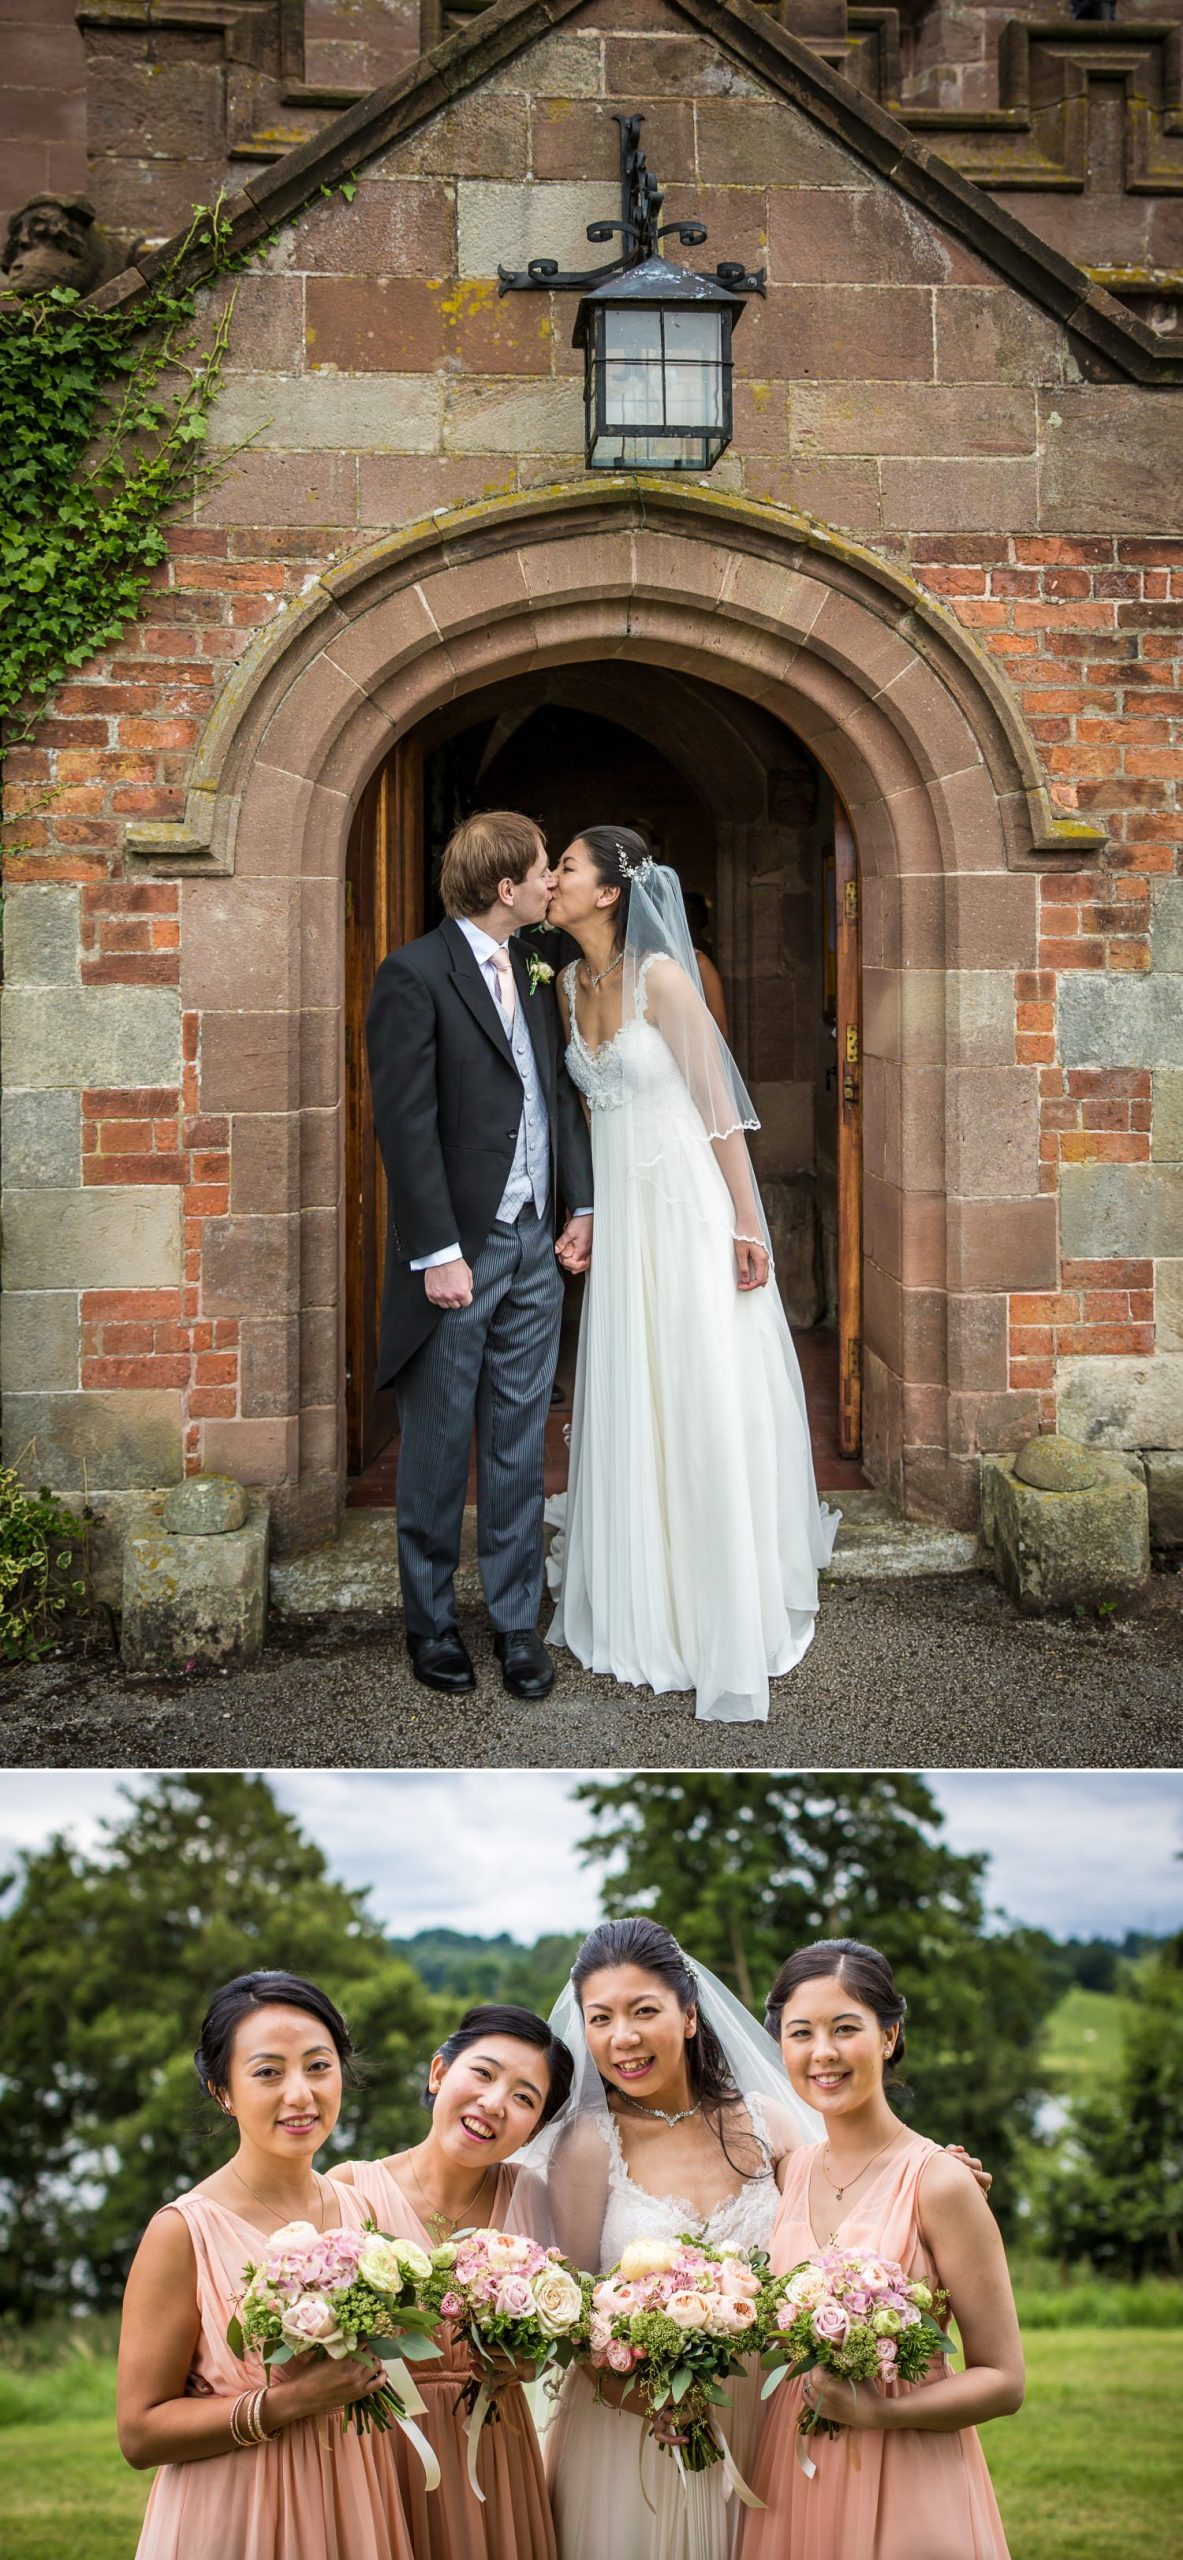 Outside church first kiss Wedding Photographs before reception at Iscoyd Park